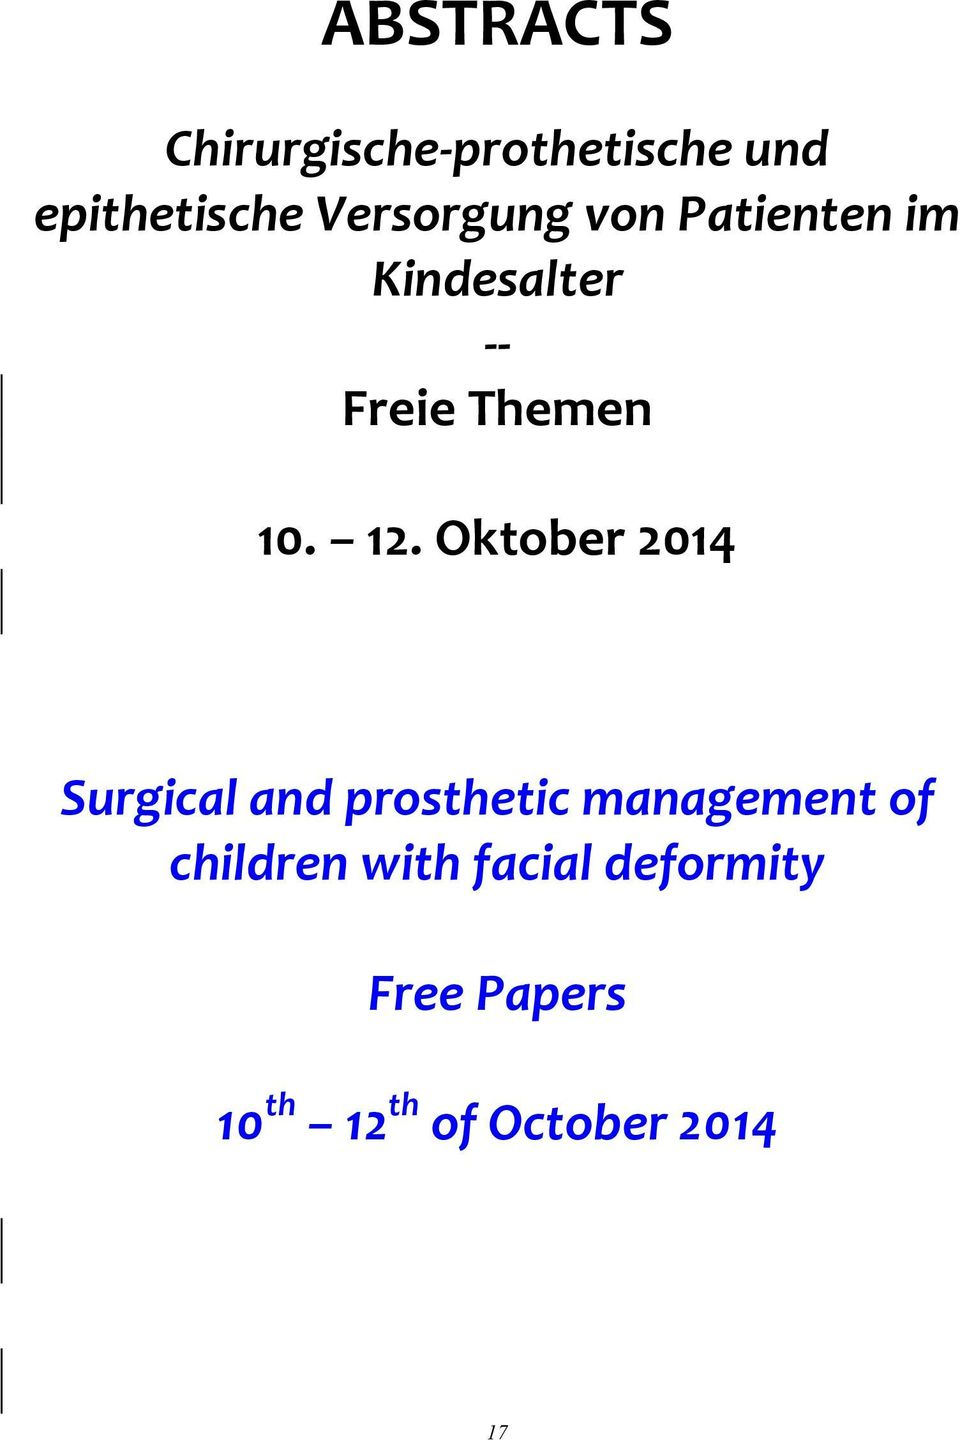 12. Oktober 2014 Surgical and prosthetic management of